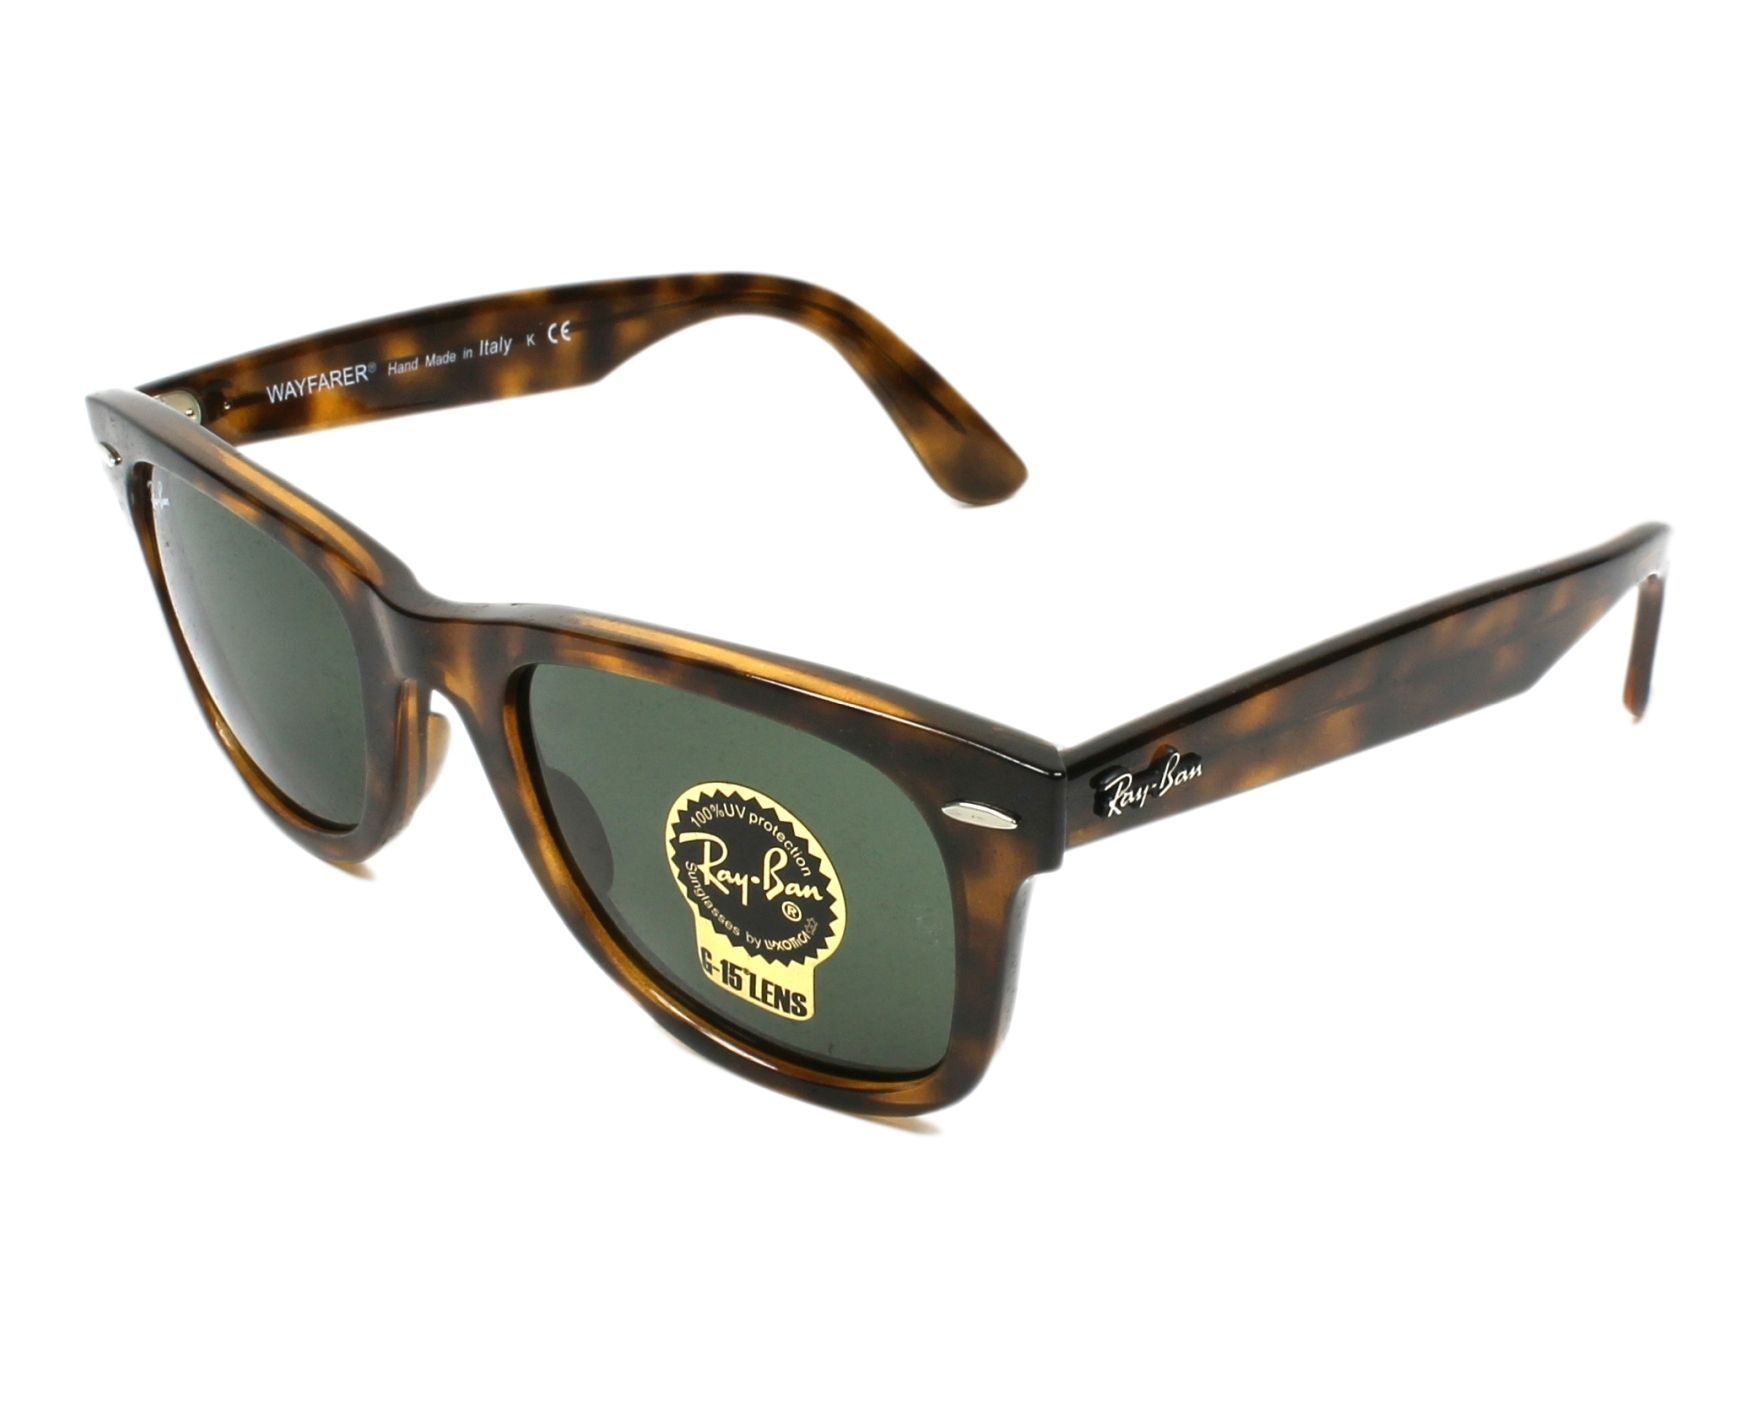 Sunglasses Ray-Ban RB-4340 710 50-22 Havana profile view e27eeef15e1